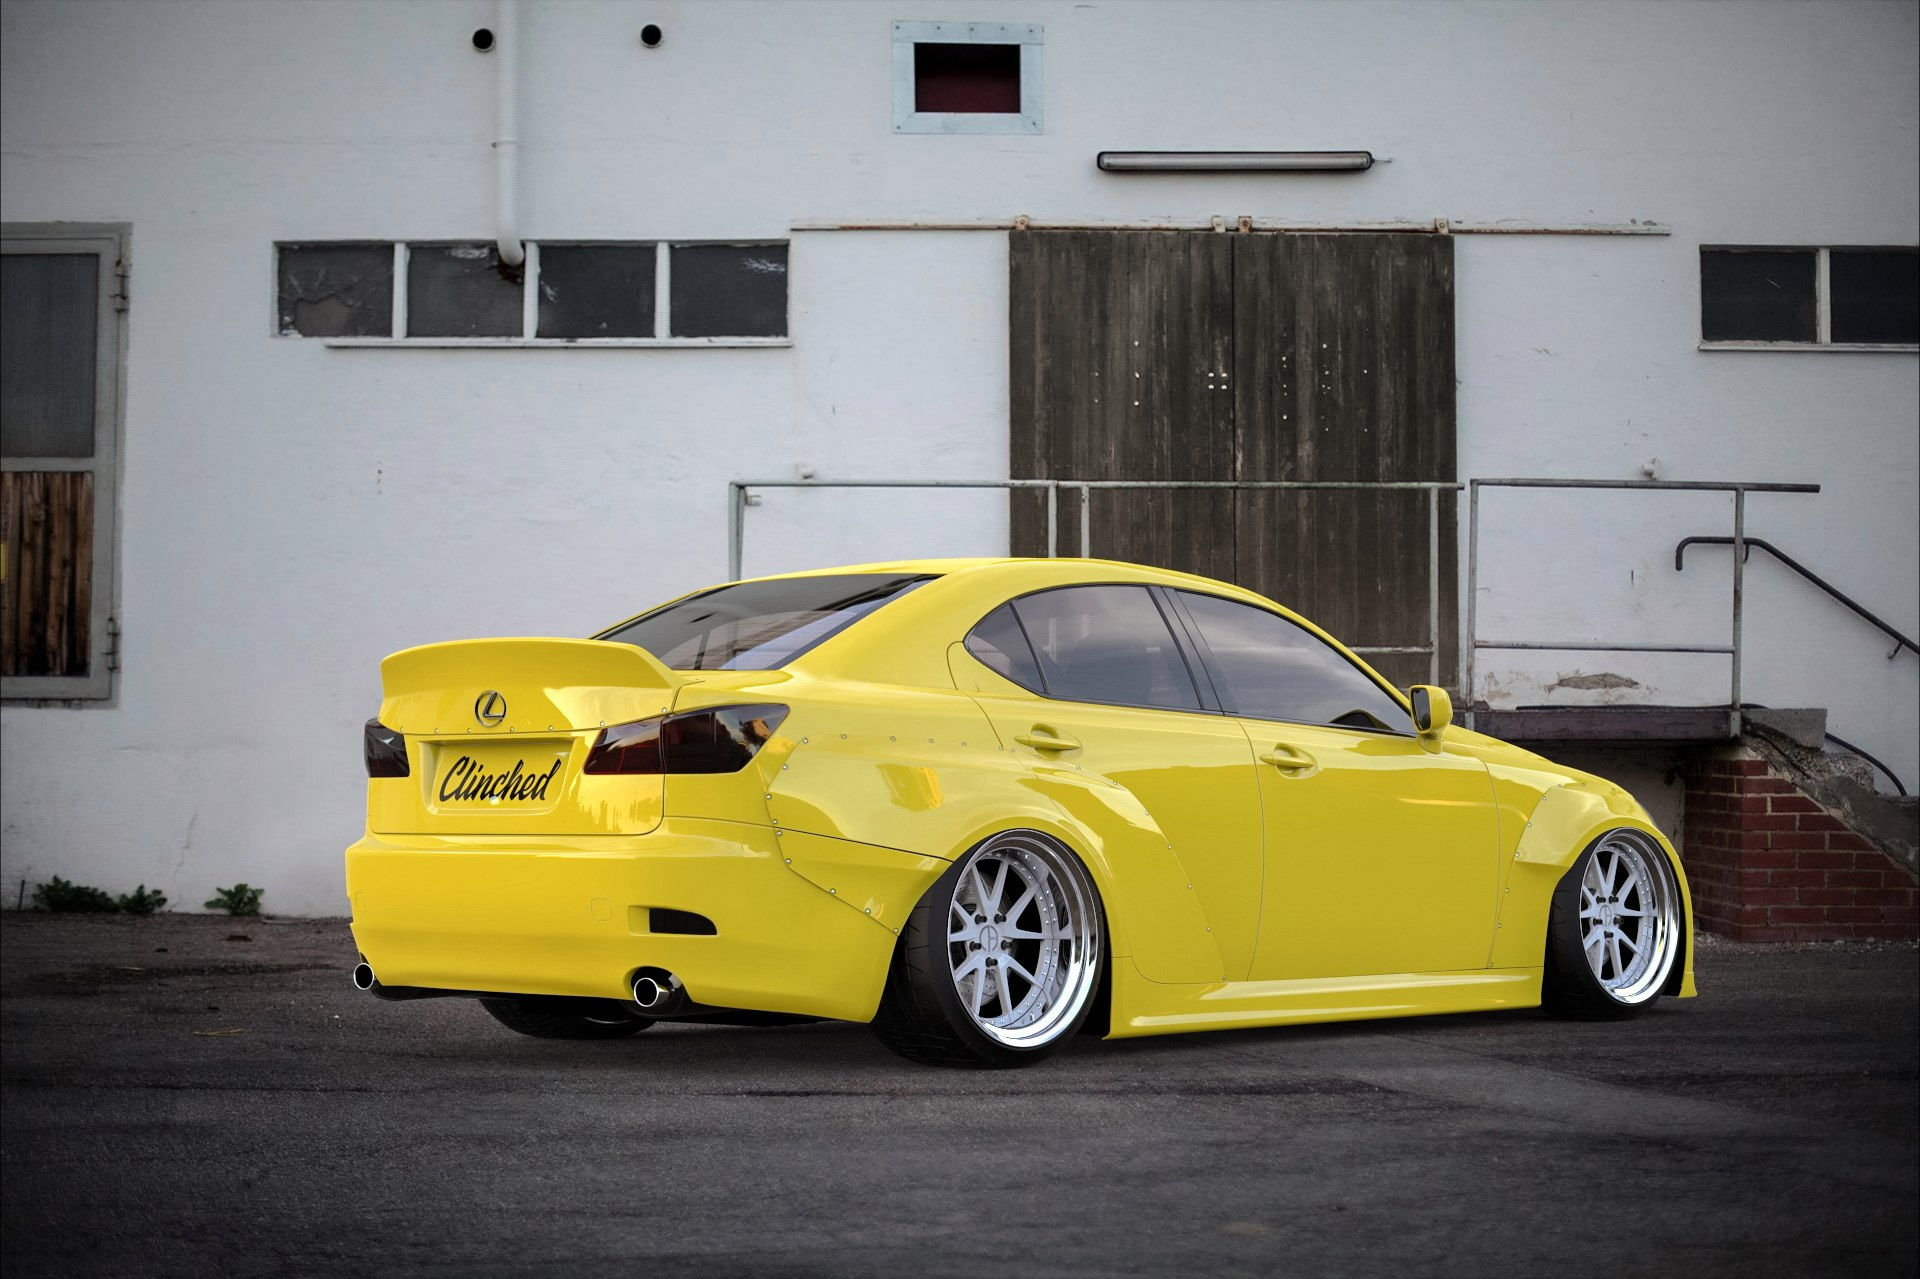 new wide body kit from clinched for 2is page 2 clublexus lexus forum discussion. Black Bedroom Furniture Sets. Home Design Ideas